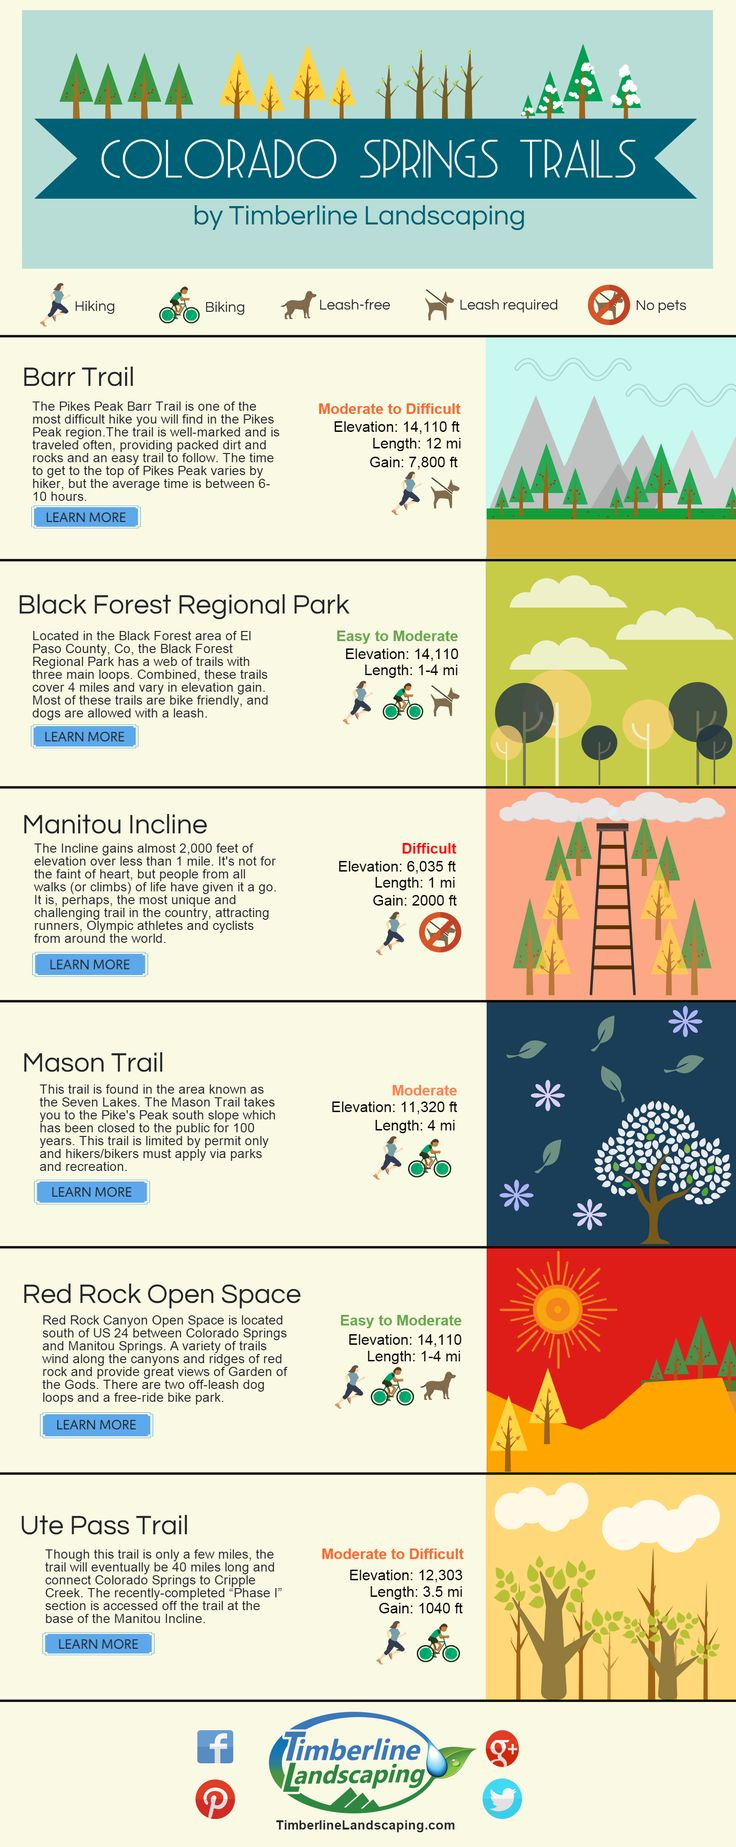 Hiking, Walking or Biking in Colorado Springs? This handy trail guide will help you find the best trail for you!